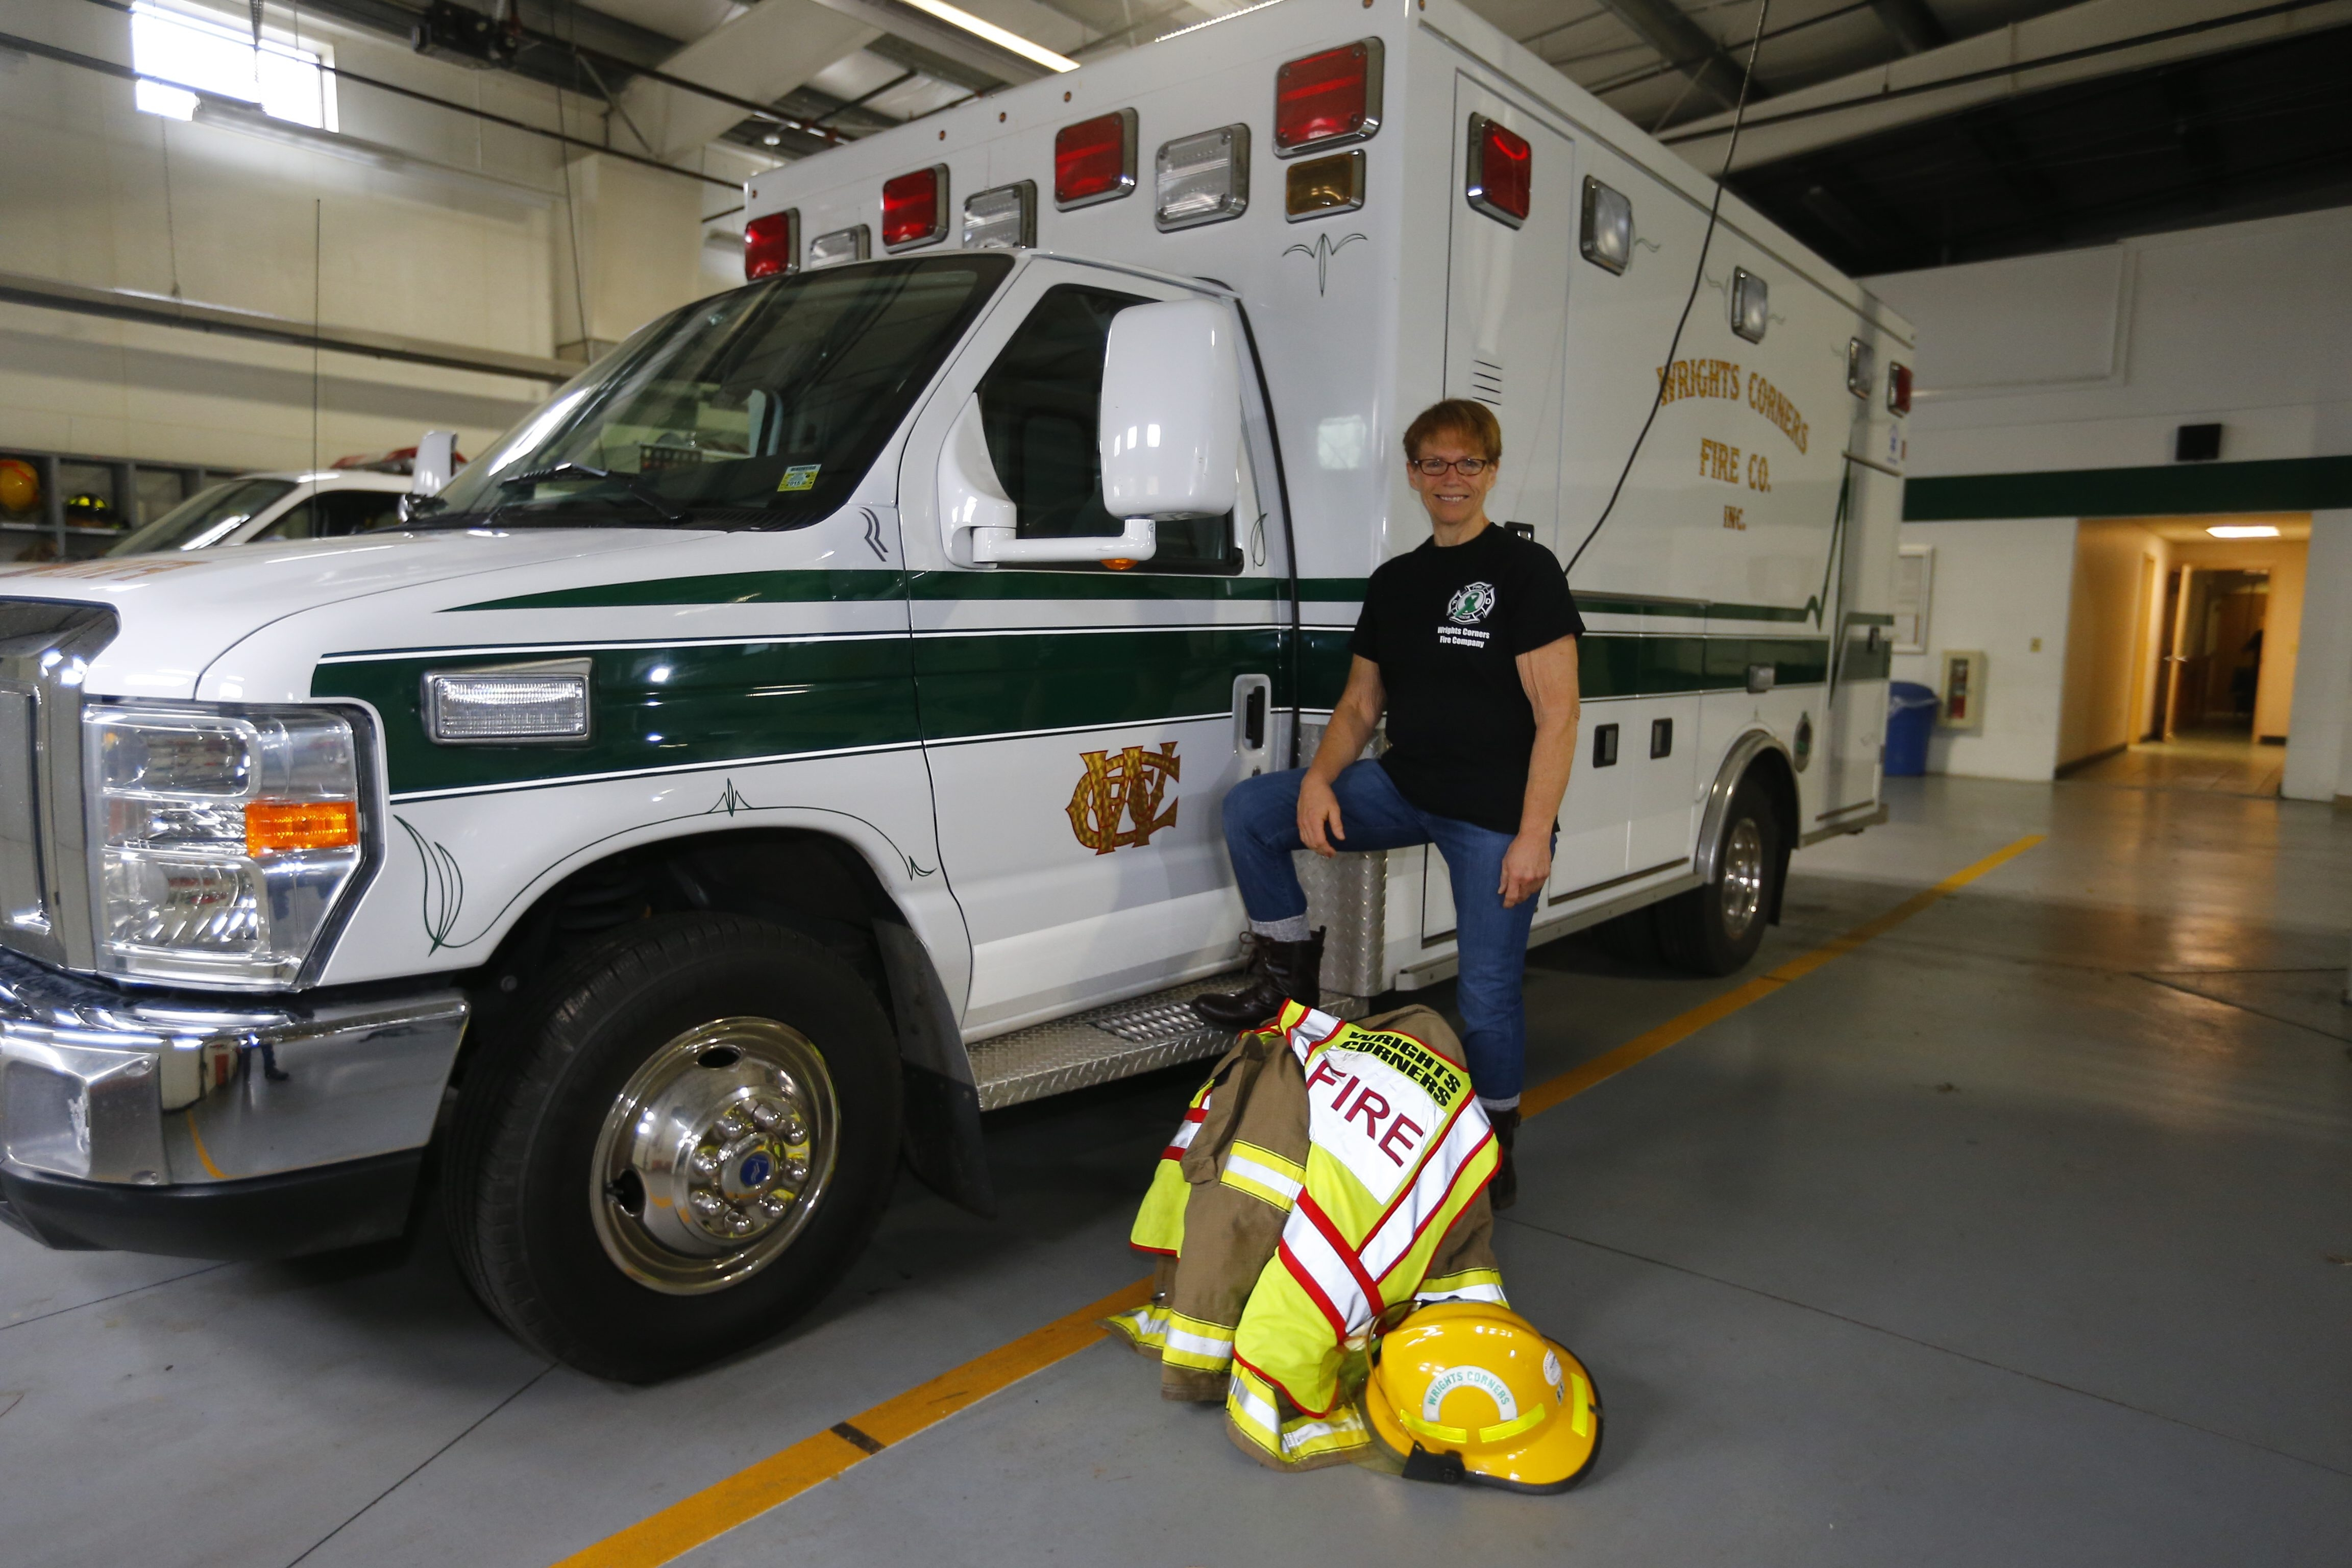 Bonita Reid lost about 180 pounds and became a volunteer firefighter at  Wright Corners Fire Hall. Reid struggled with her weight for more than 30 years, before finding a program that worked for her.